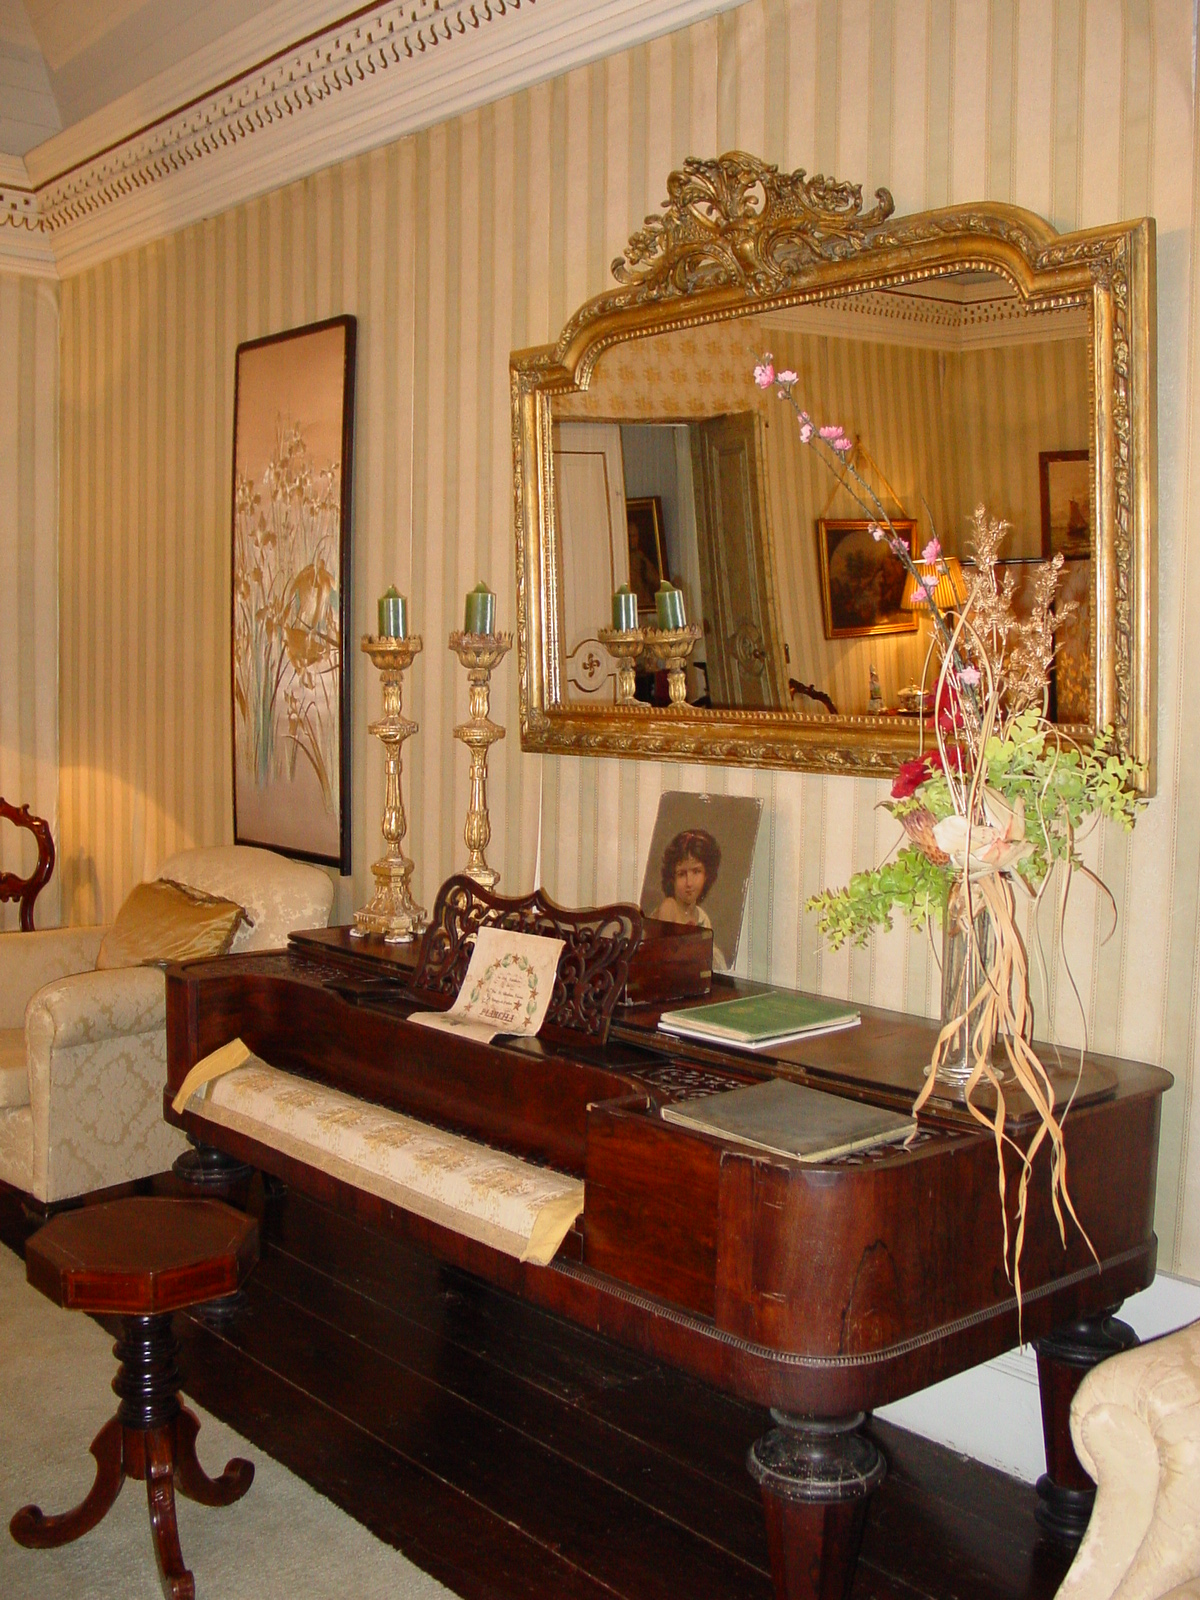 Piano in the main saloon